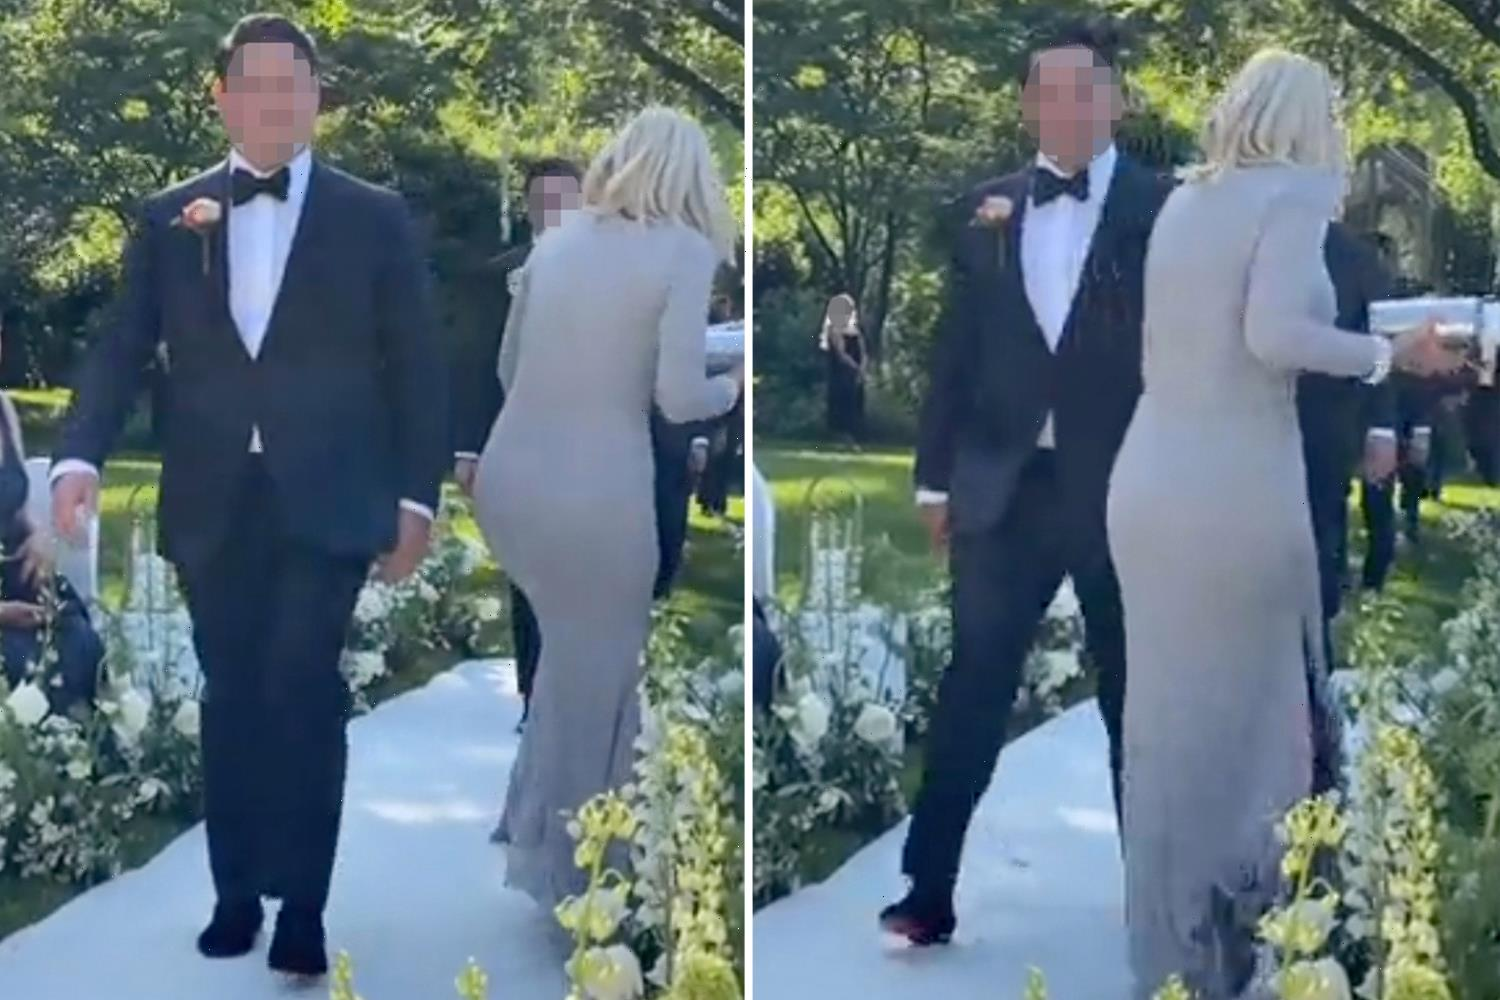 Moment step mother-in-law 'ruins wedding' by walking down the AISLE in cream coloured dress